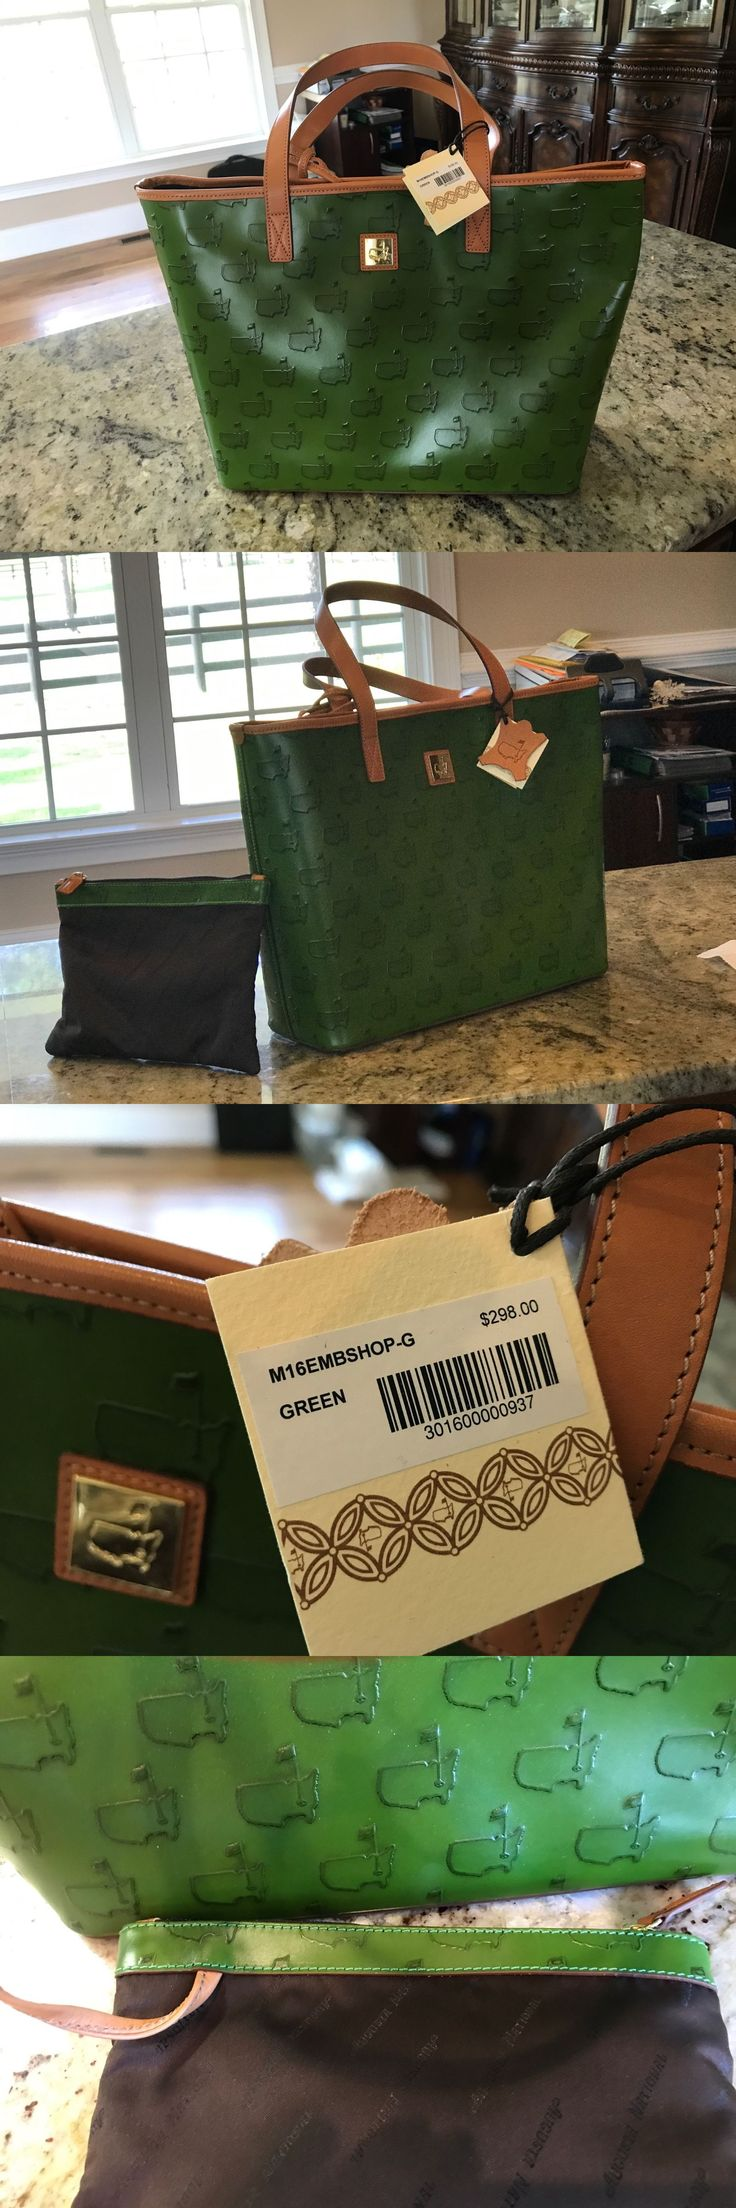 Golf 428: Augusta National Masters Golf Tournament Authentic Ladies Handbag And Purse -> BUY IT NOW ONLY: $292 on eBay!